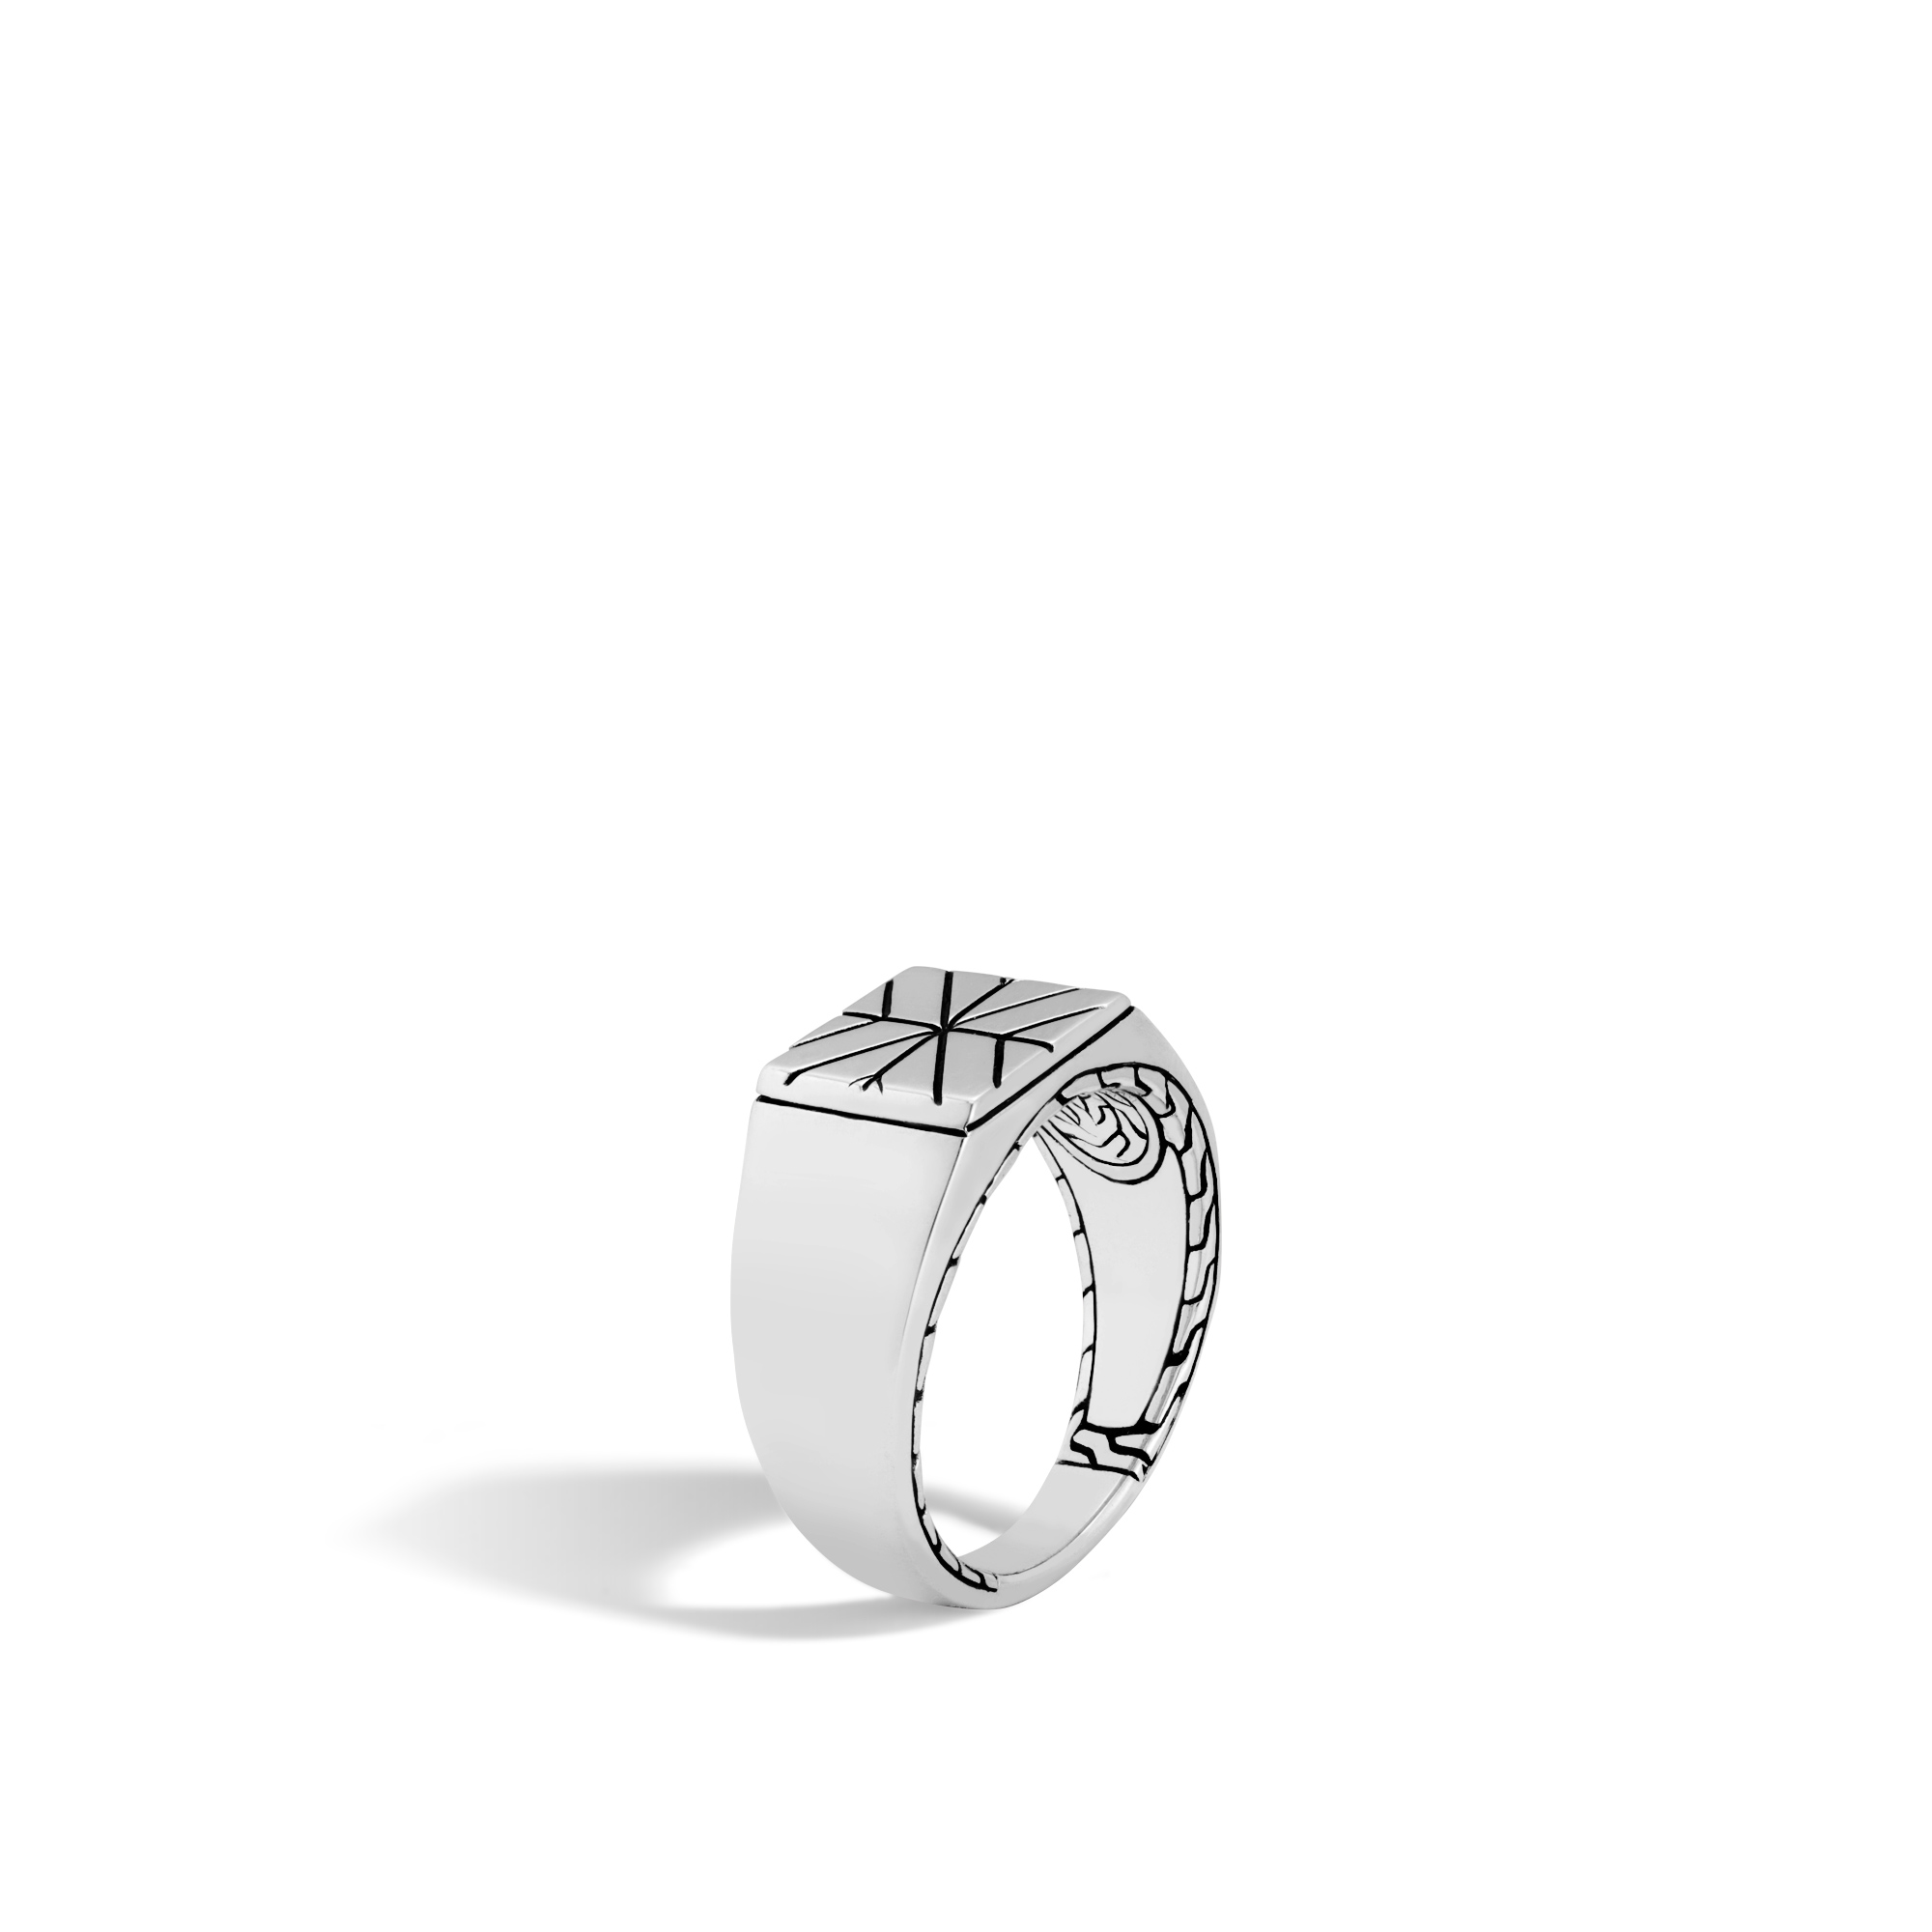 John Hardy: Sterling Silver  Modern Chain Signet  Ring Size: 10 Ring Measures 4mm To 11mm Wide